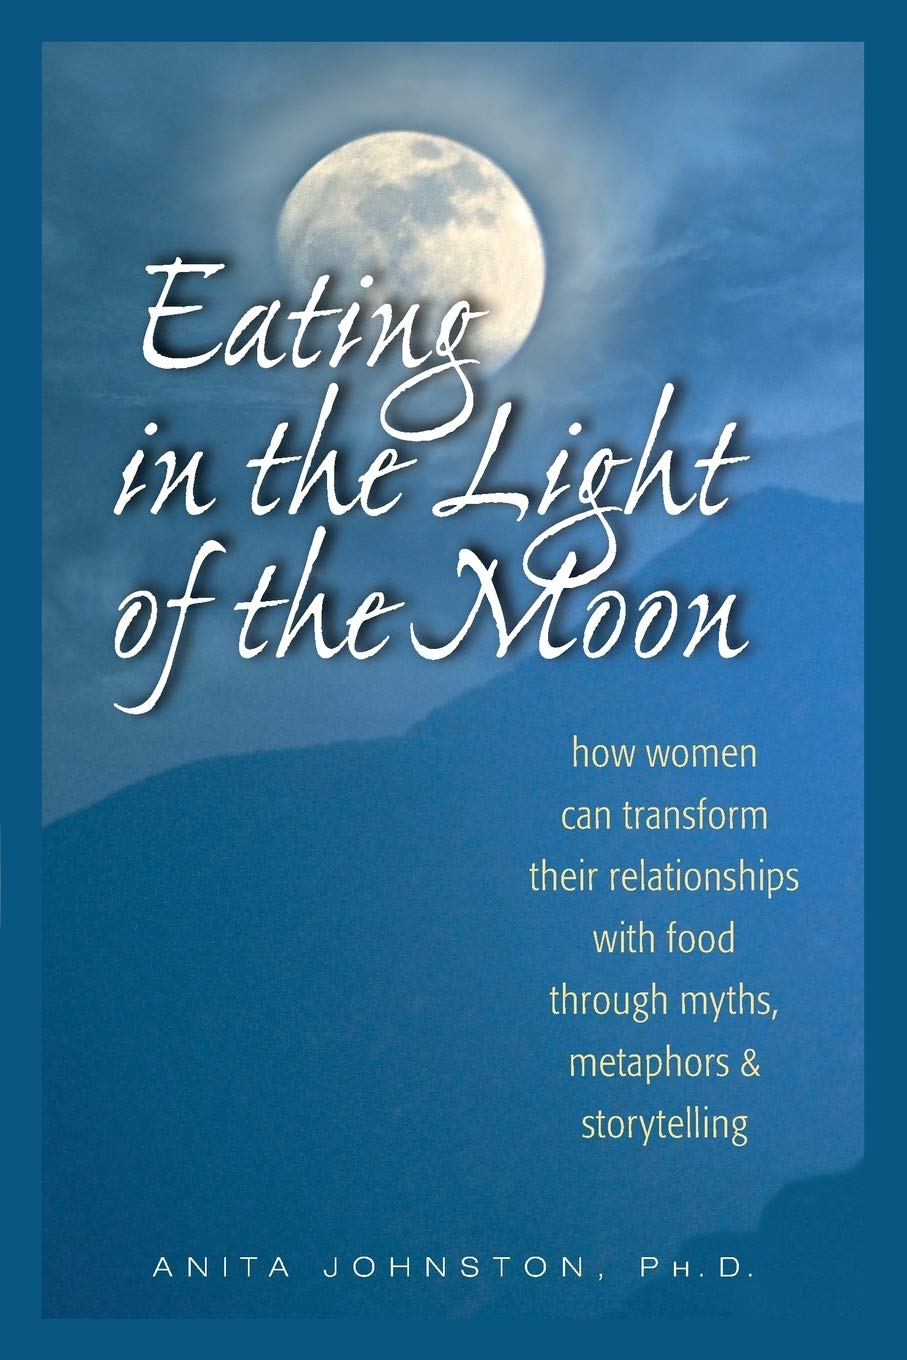 Eating in the light of the moon by Anita Johnston Ph.D.